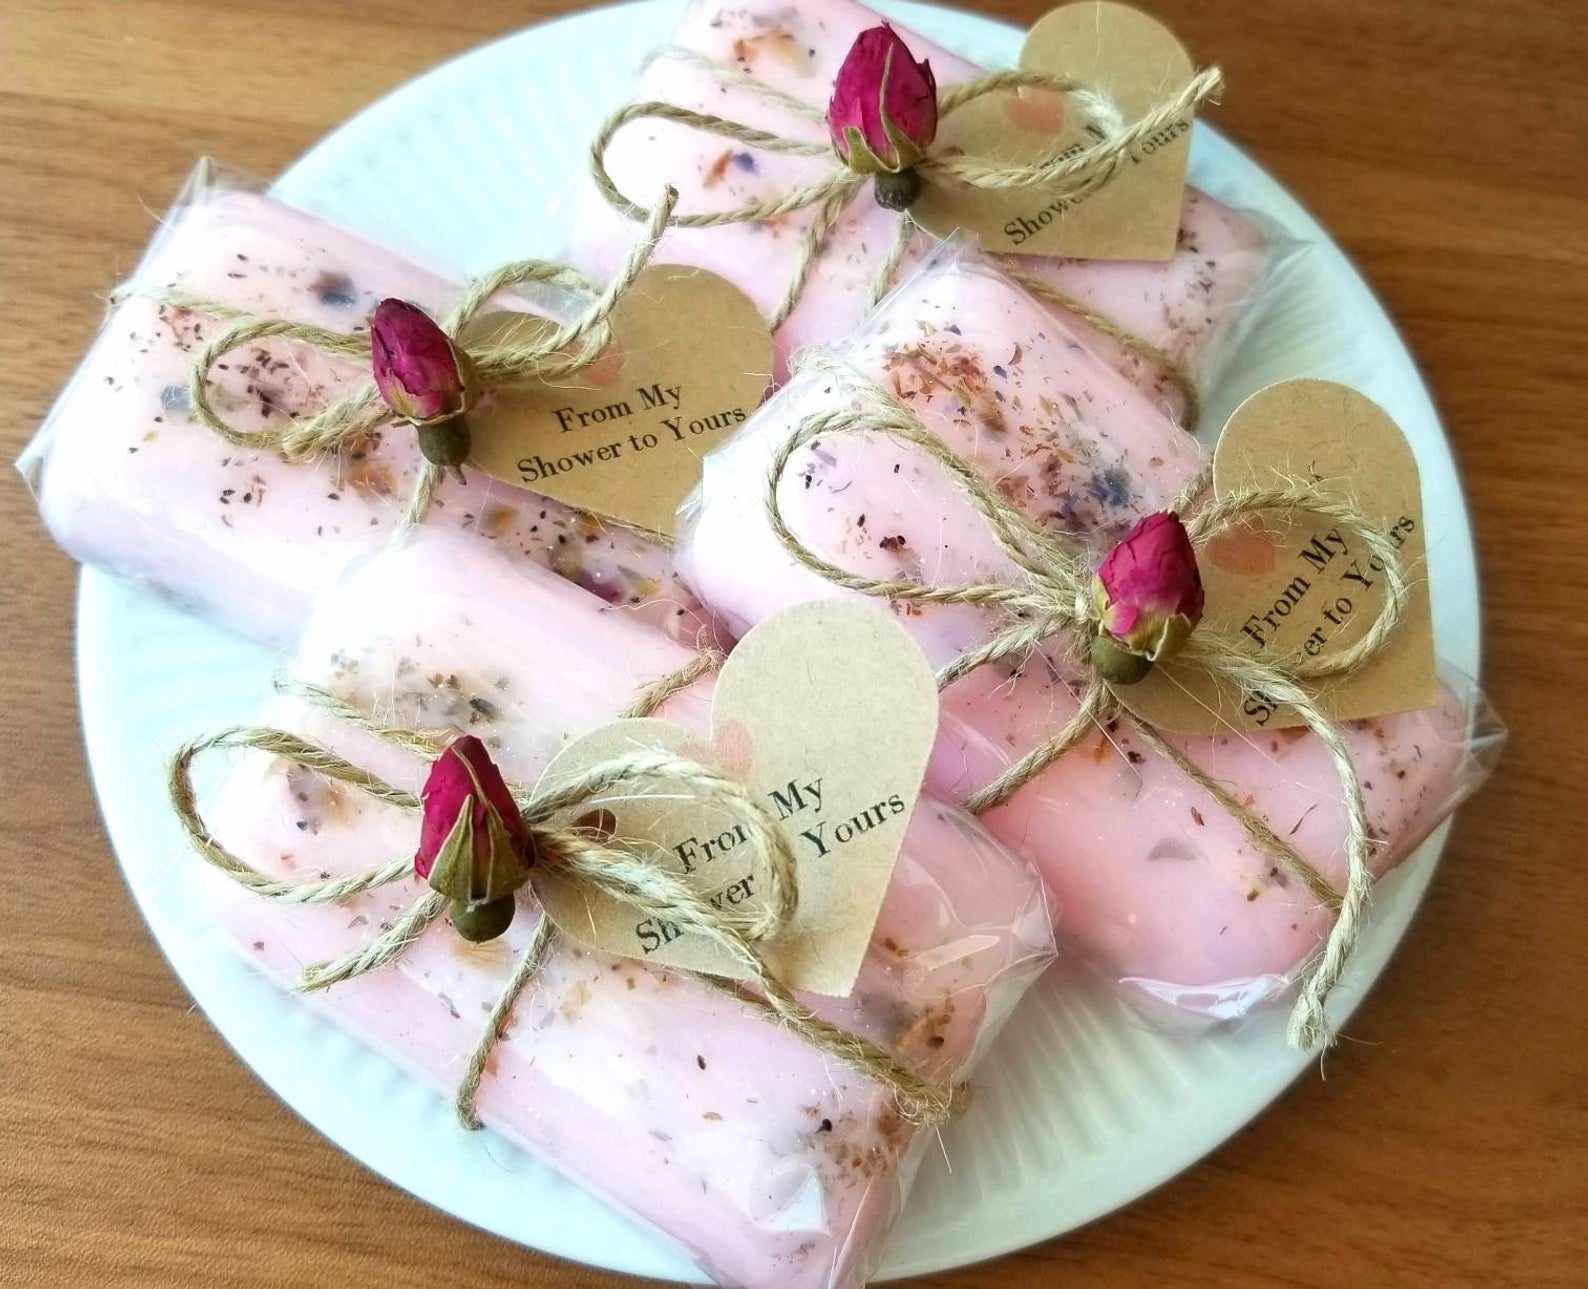 Blush Mini Bar Soaps from The Little Soap Store